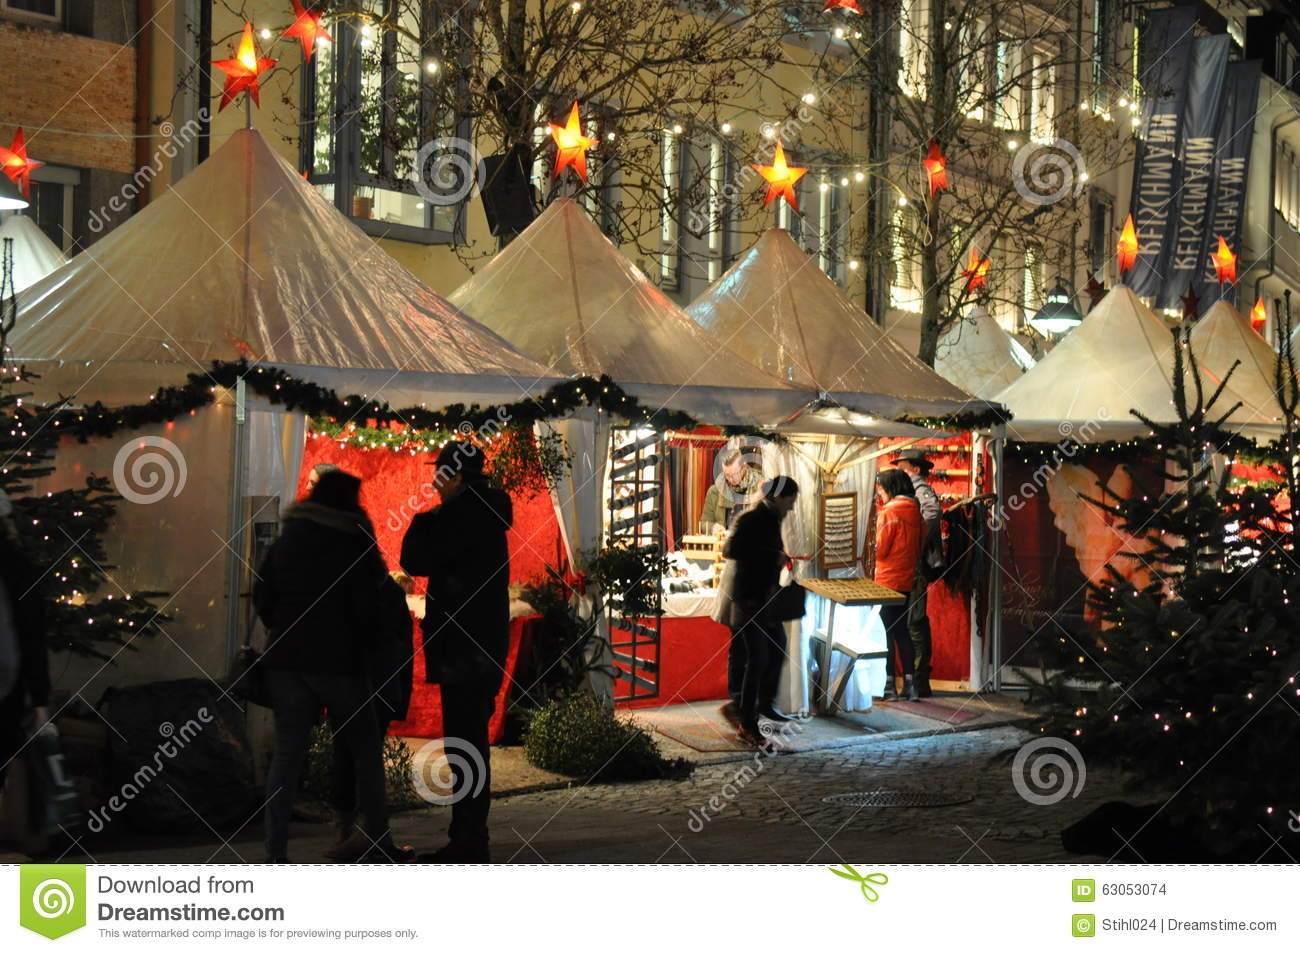 weihnachtsmarkt in ravensburg redaktionelles stockbild bild 63053074. Black Bedroom Furniture Sets. Home Design Ideas